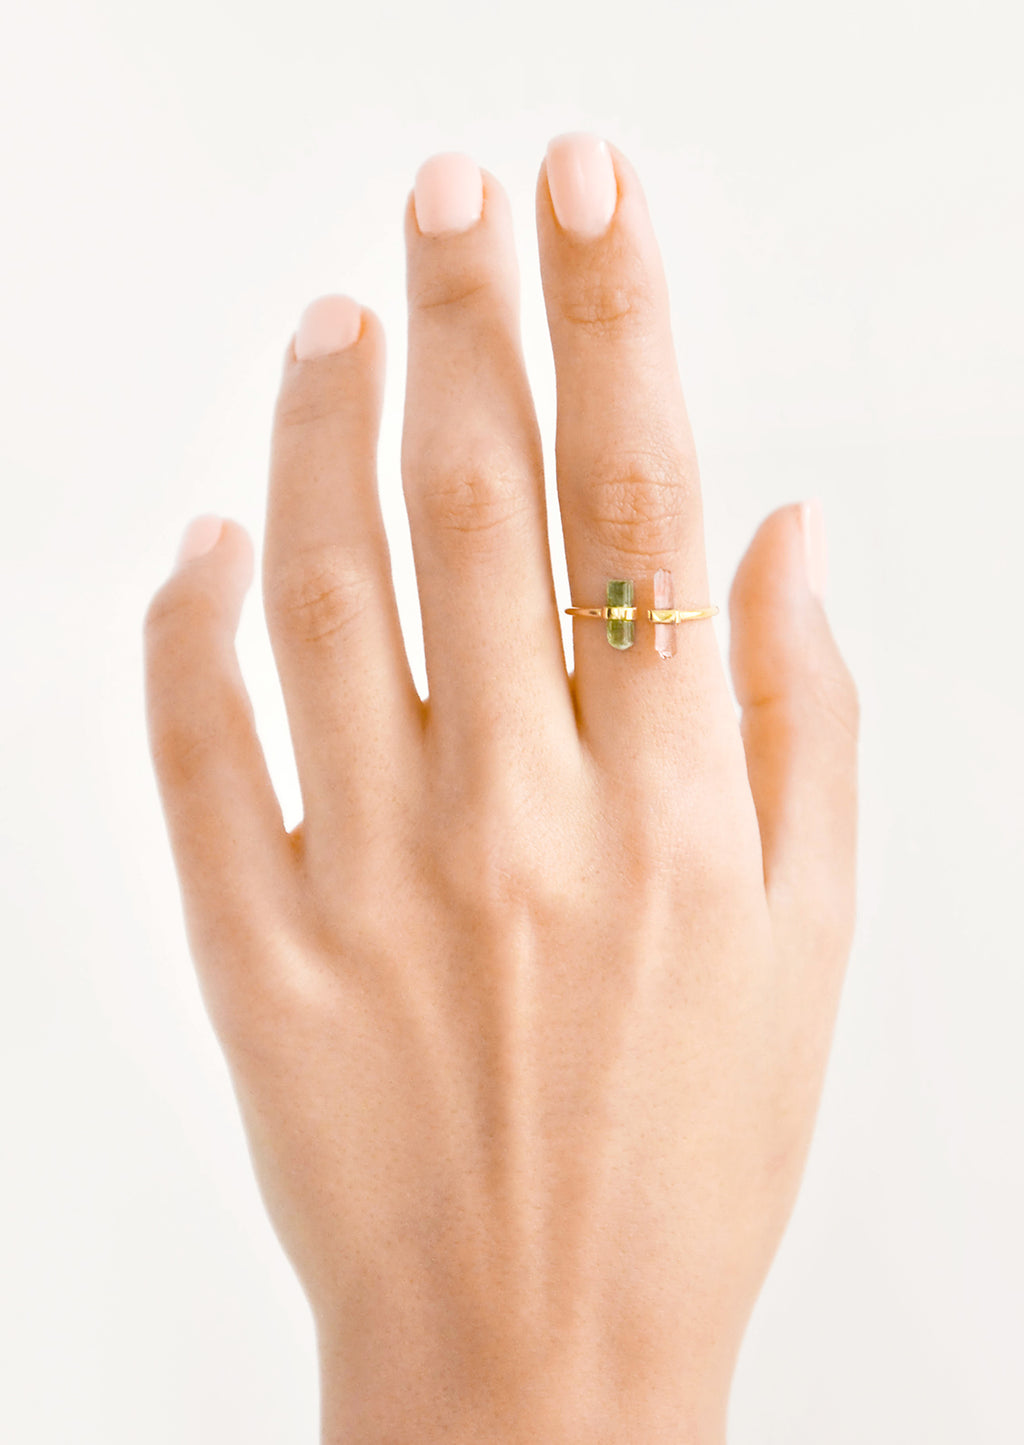 2: Model shot showing hand wearing ring with crystals.